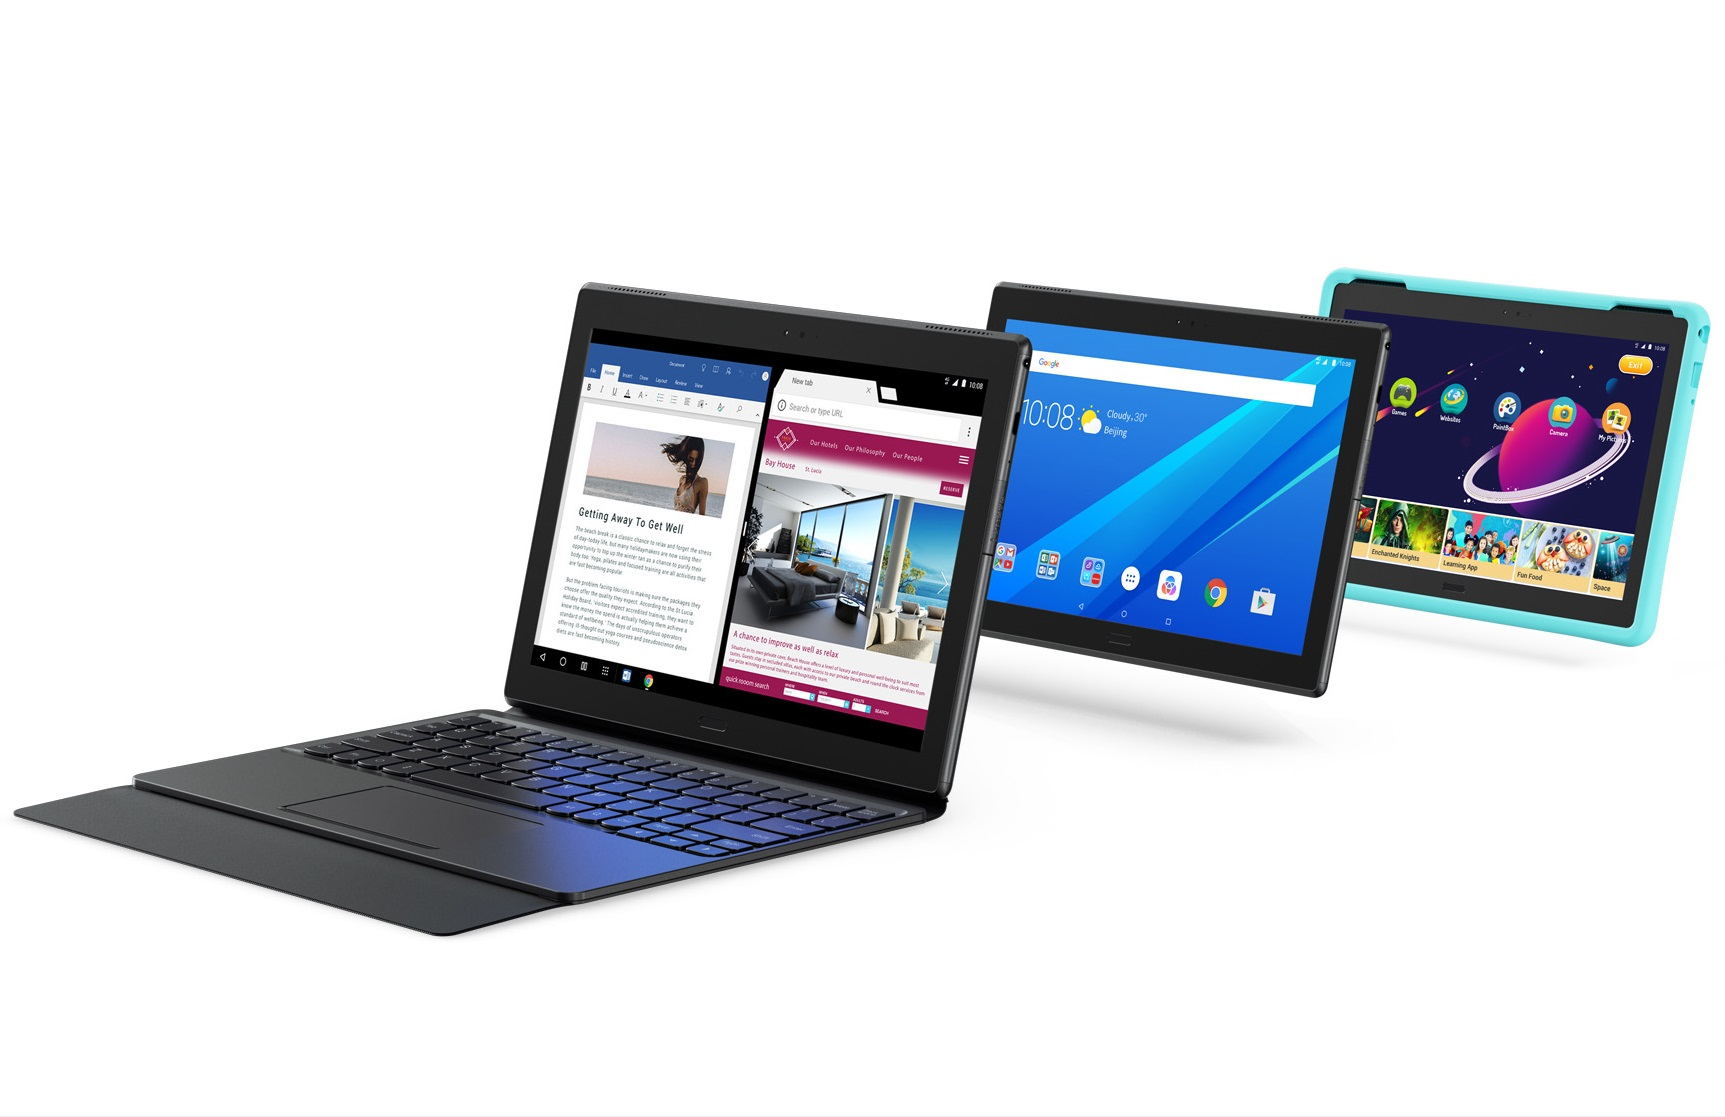 lenovo tab 4 8 und 10 zoll android tablets f r die. Black Bedroom Furniture Sets. Home Design Ideas